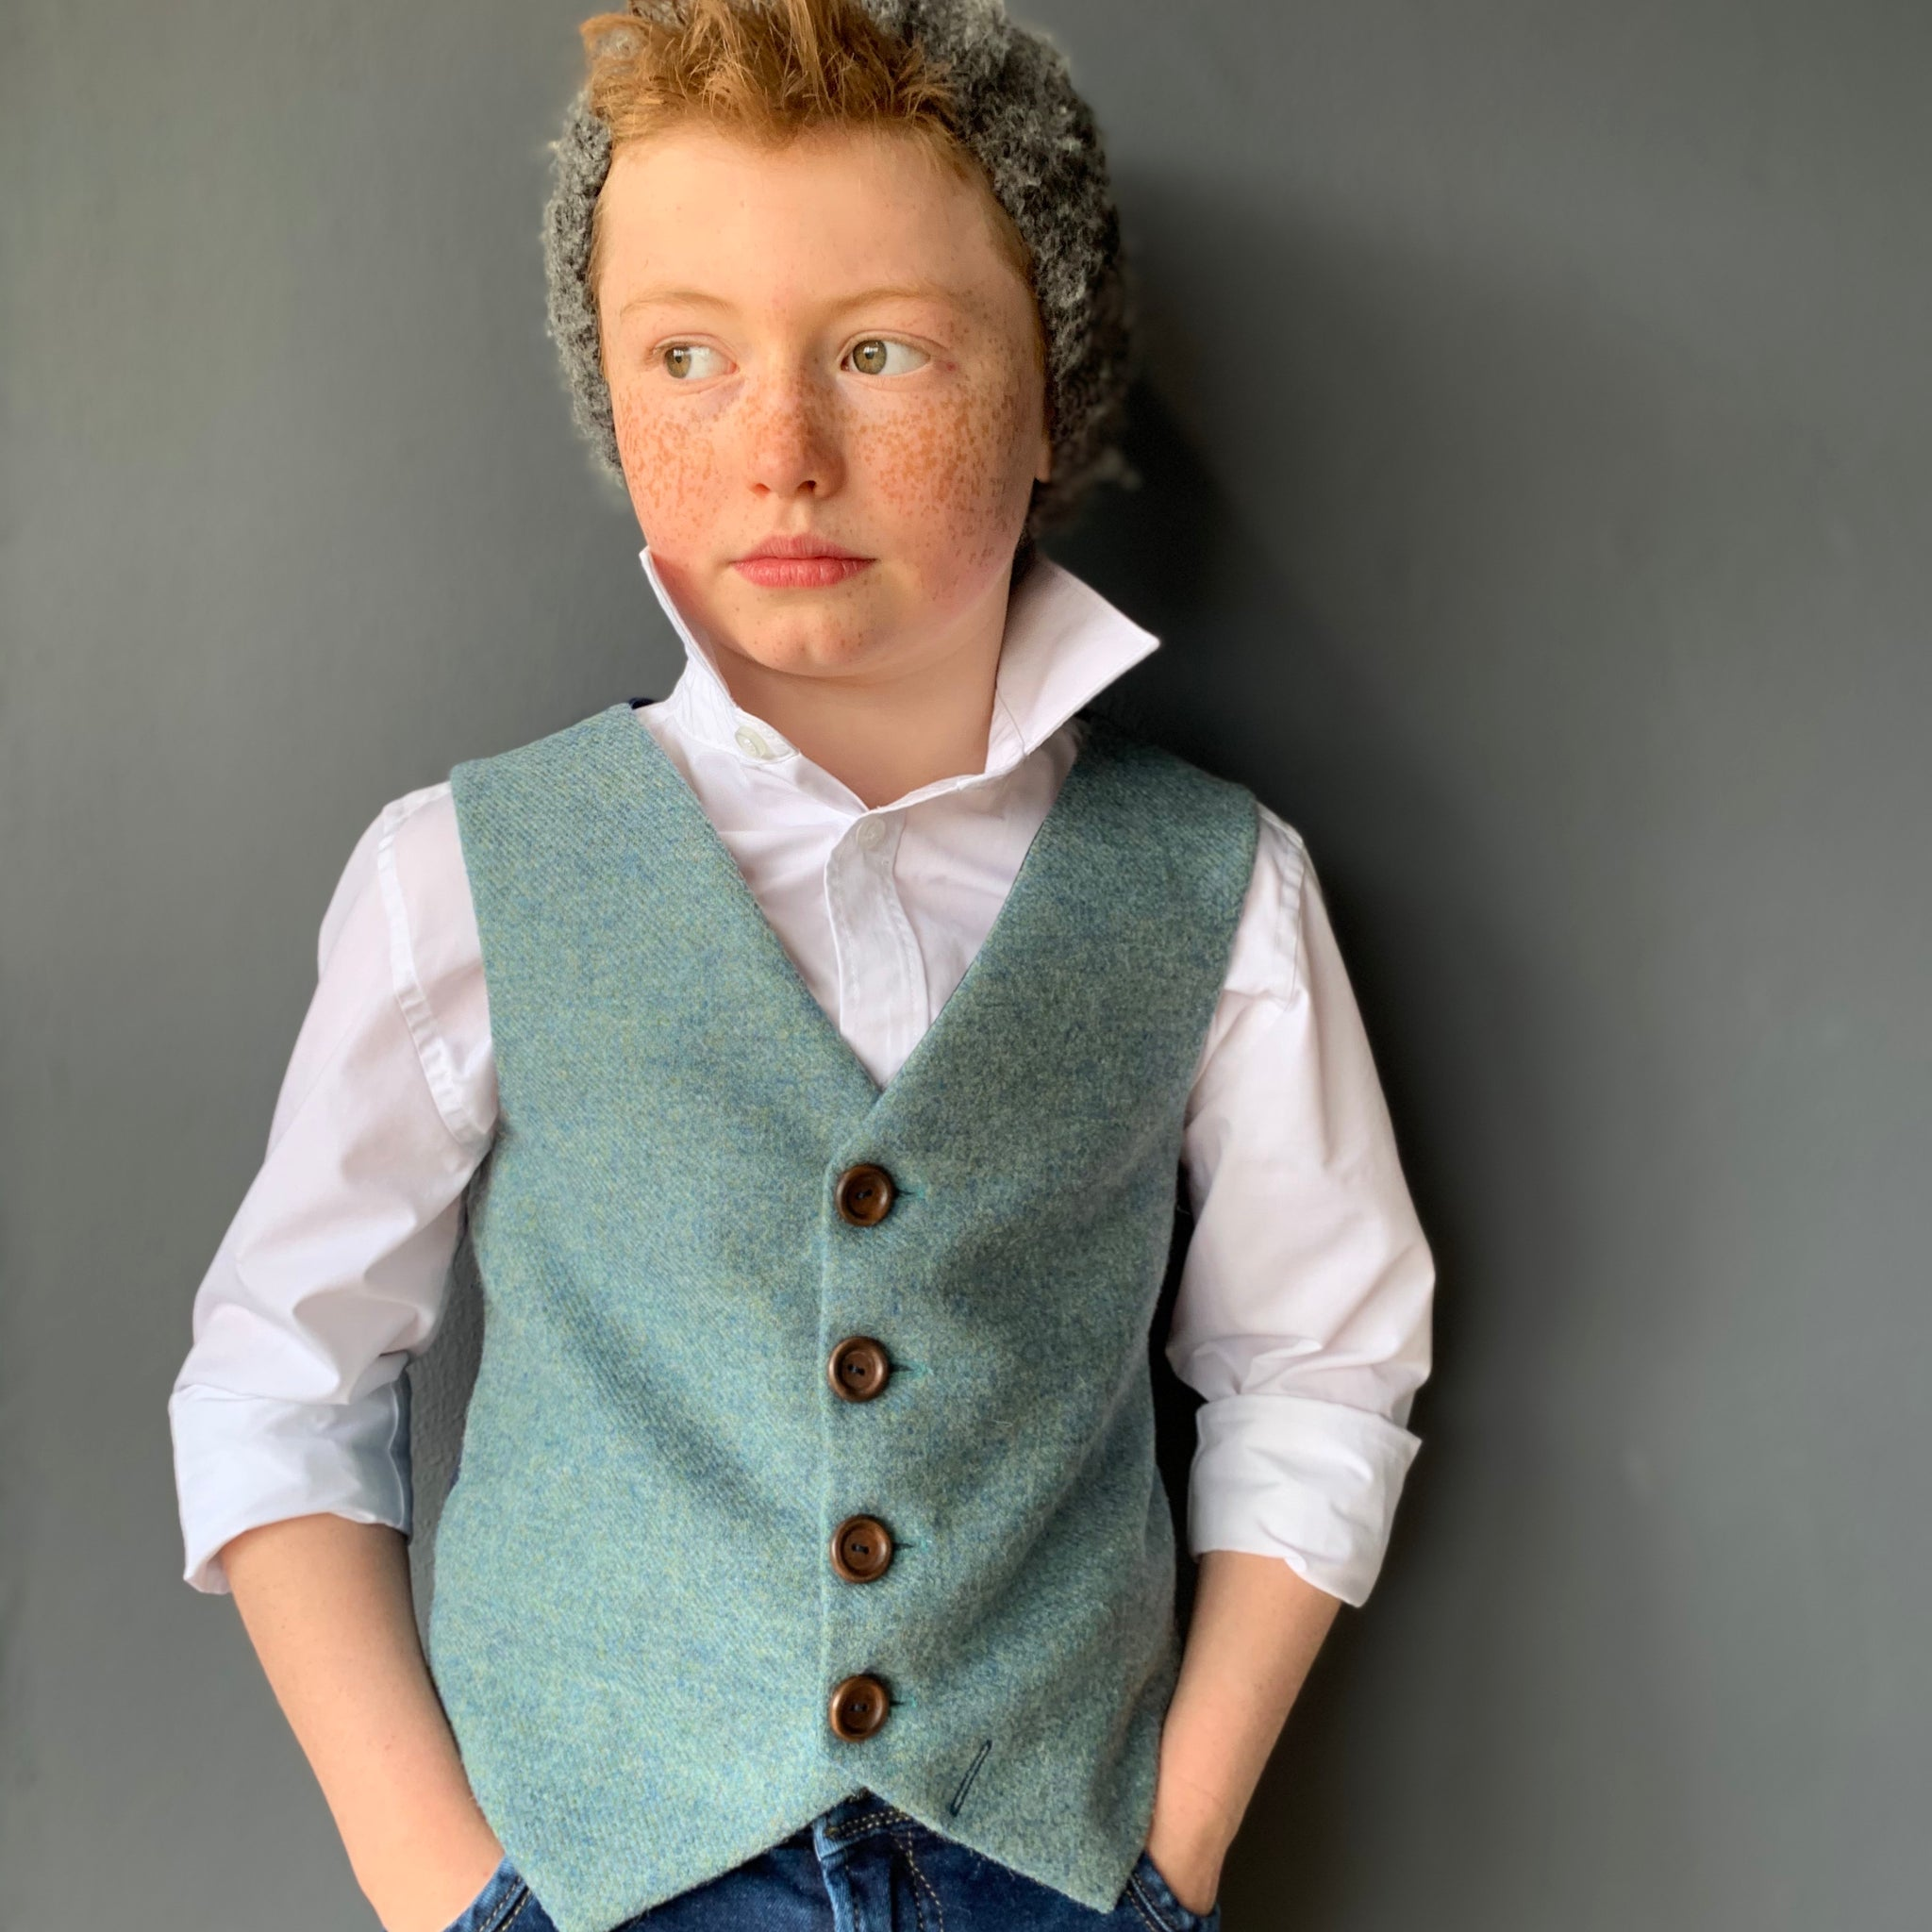 SAMPLE SALE 'P.T.Barnum' Boys waistcoat handmade in dolphin blue British tweed SIZE 7-8